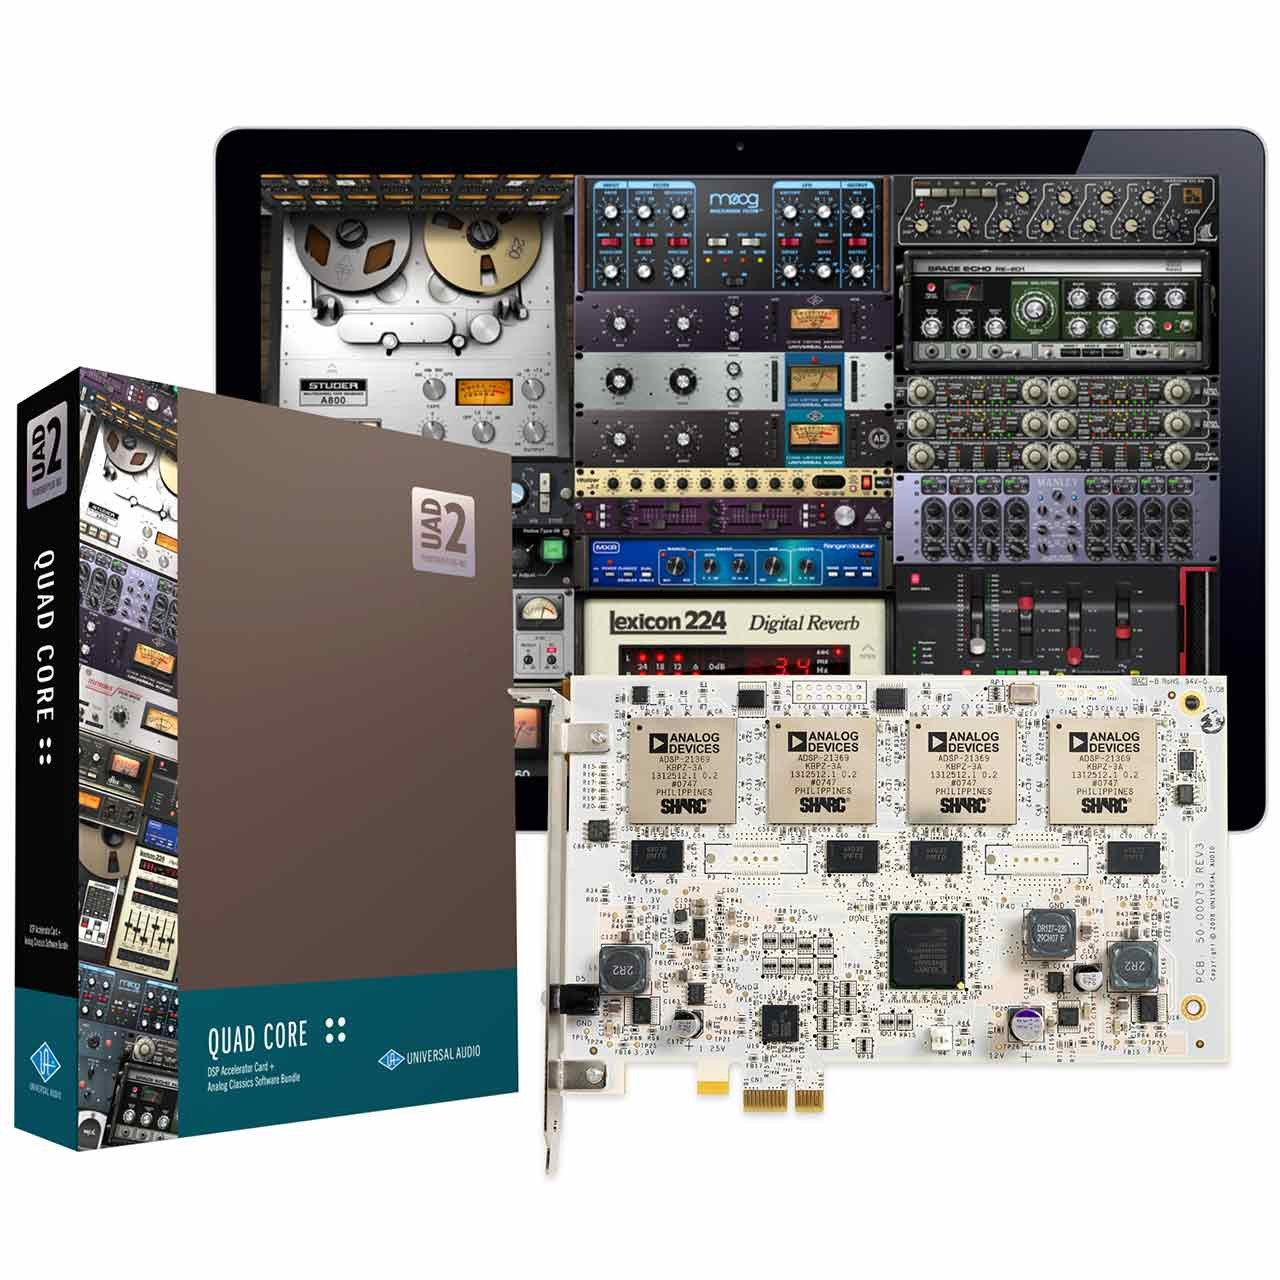 DSP Hardware - Universal Audio UAD-2 Quad CORE PCIe DSP Card